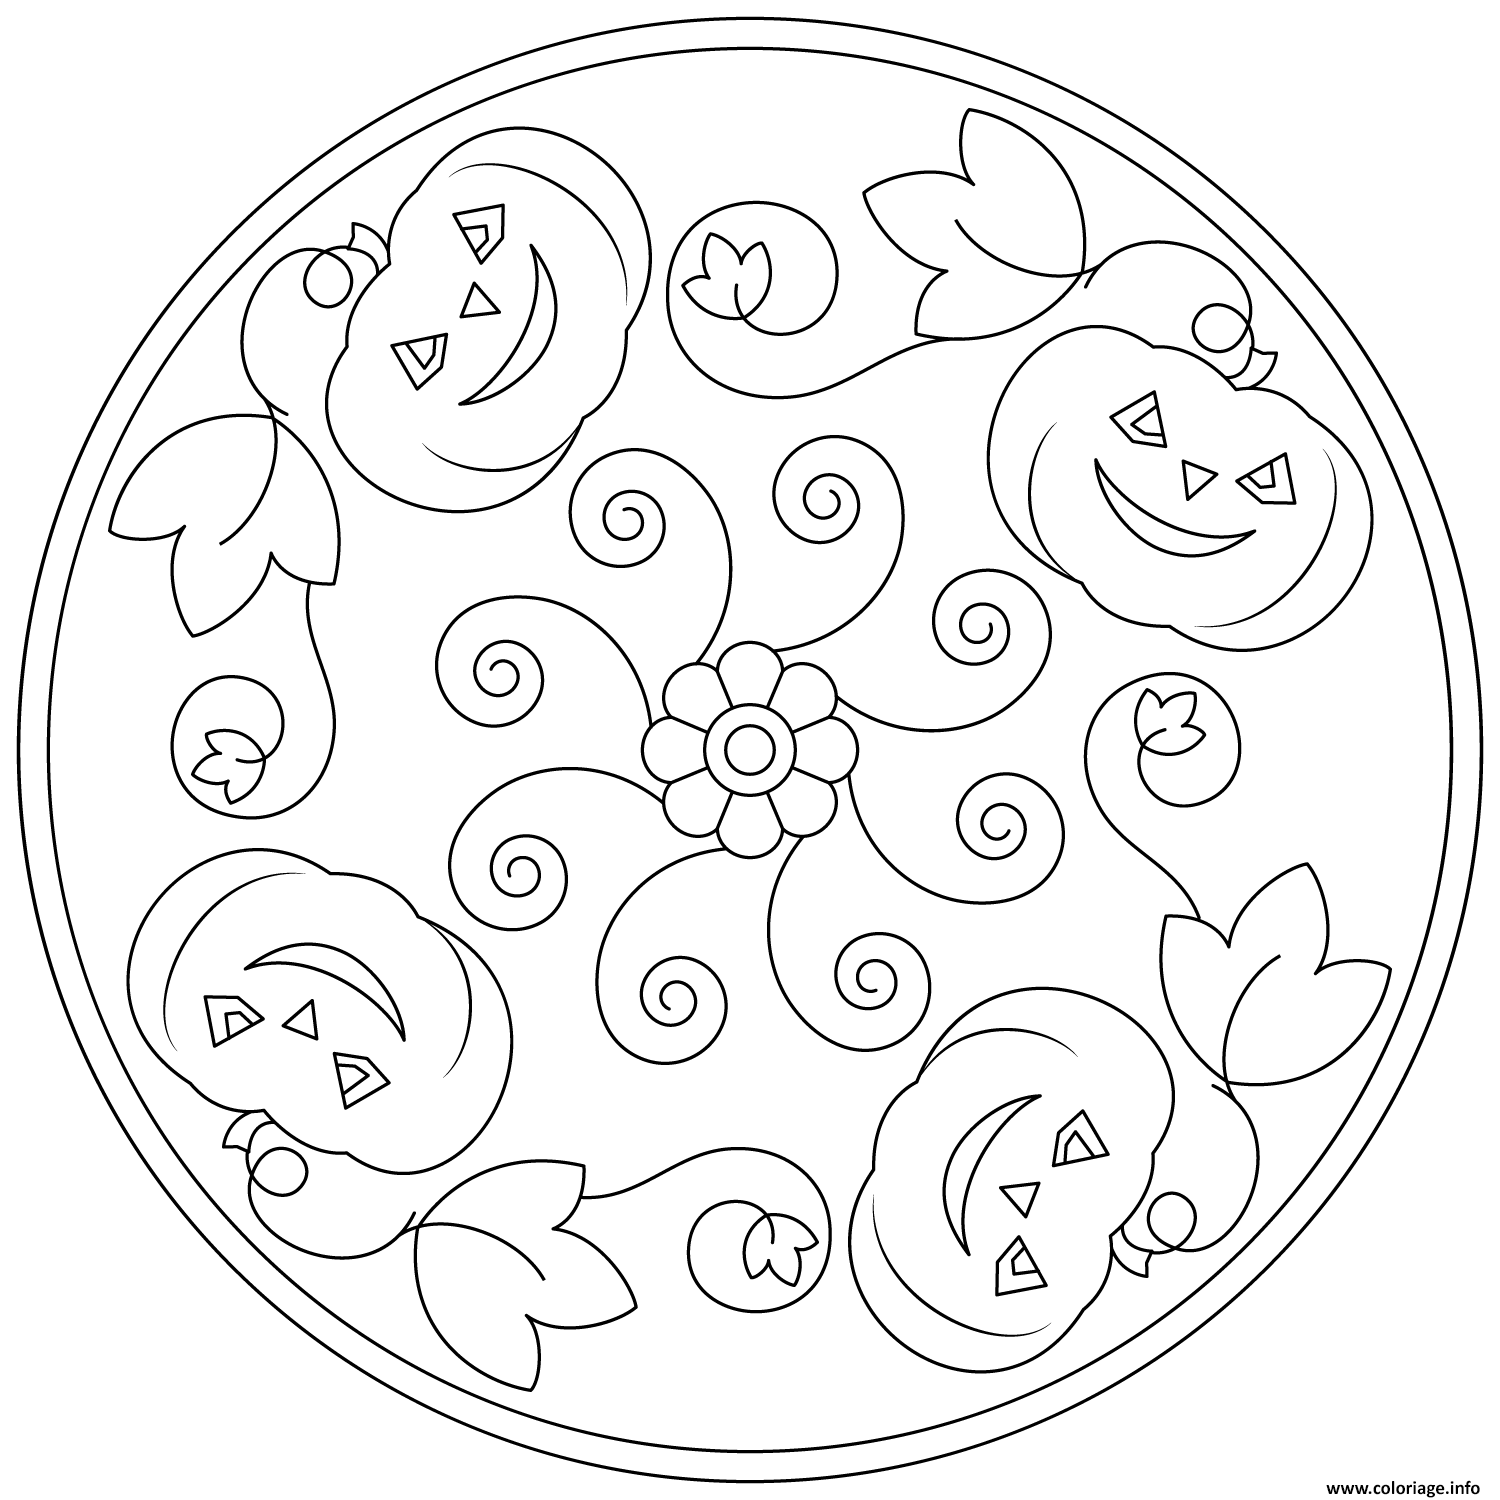 coloriage halloween mandala facile citrouille simple dessin. Black Bedroom Furniture Sets. Home Design Ideas